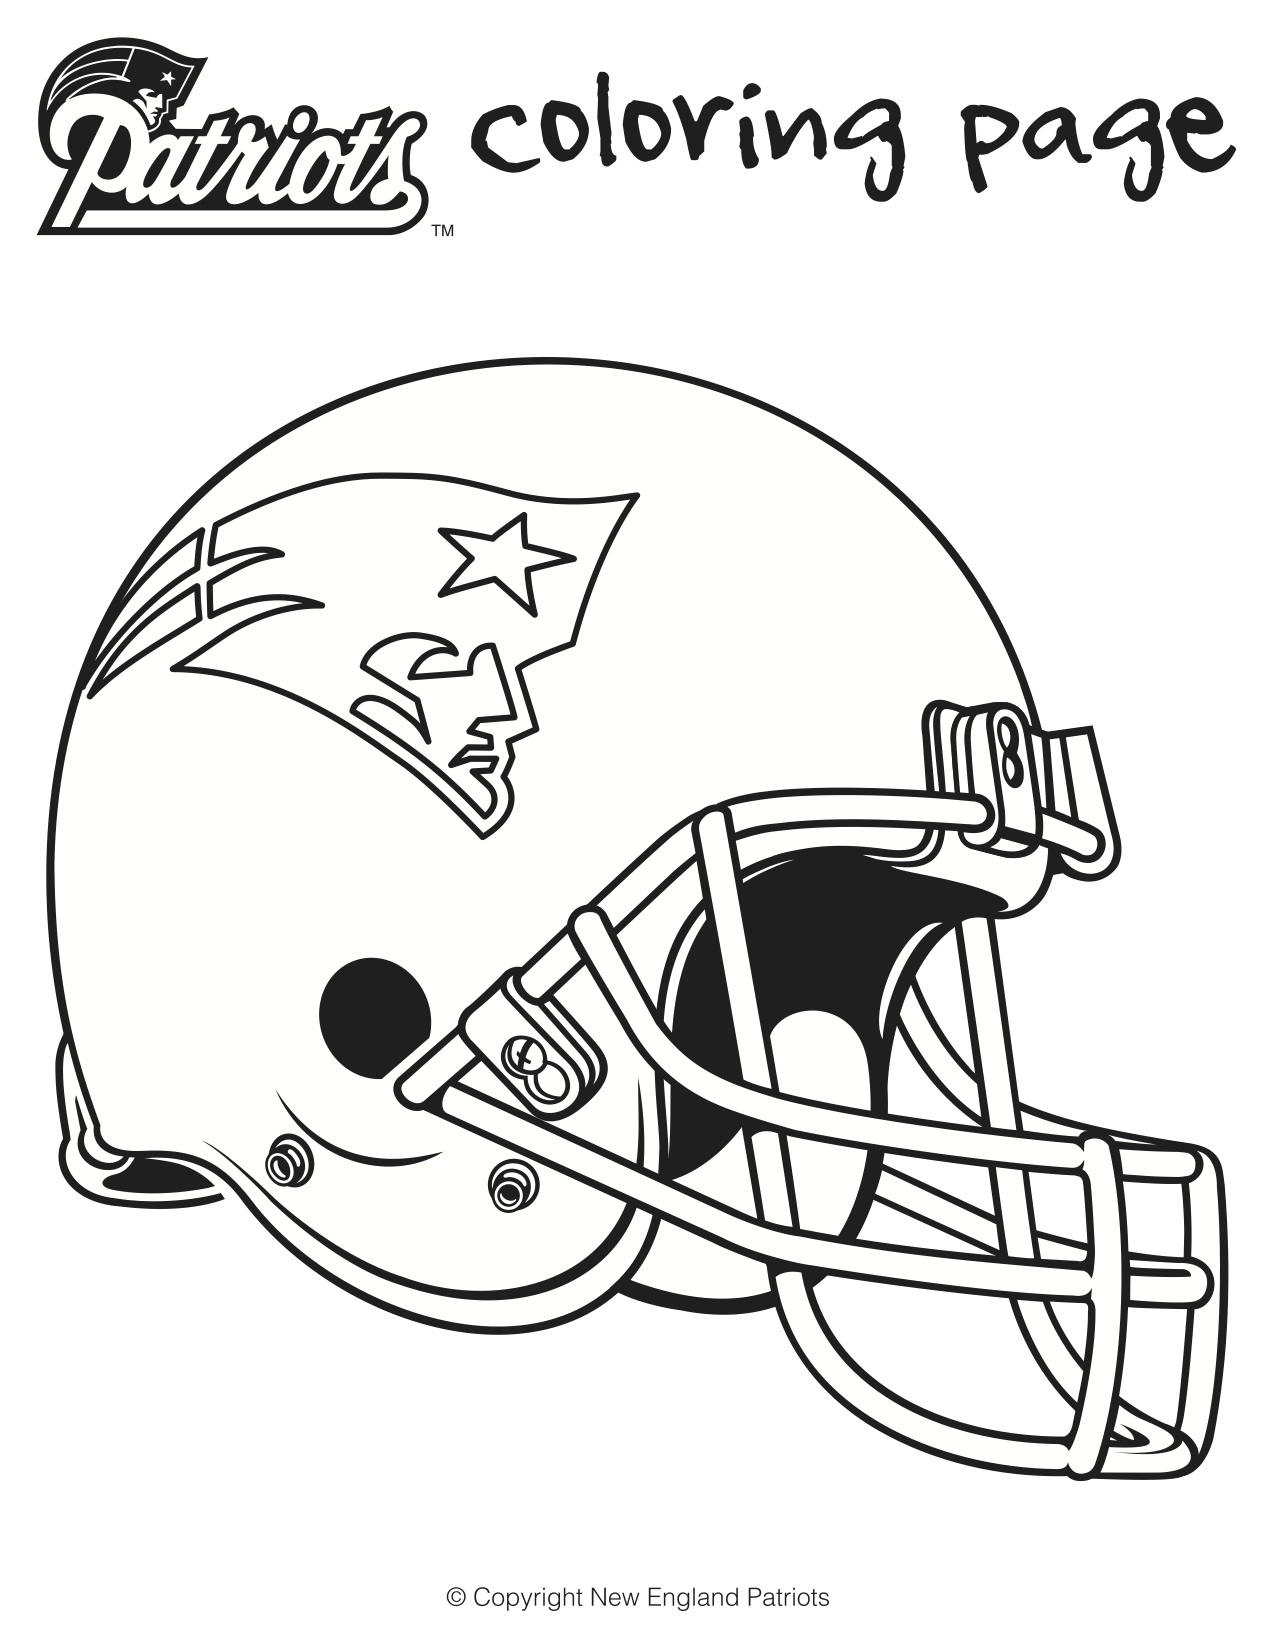 Football coloring sheets for kids charlene chronicles for Football coloring pages for kids